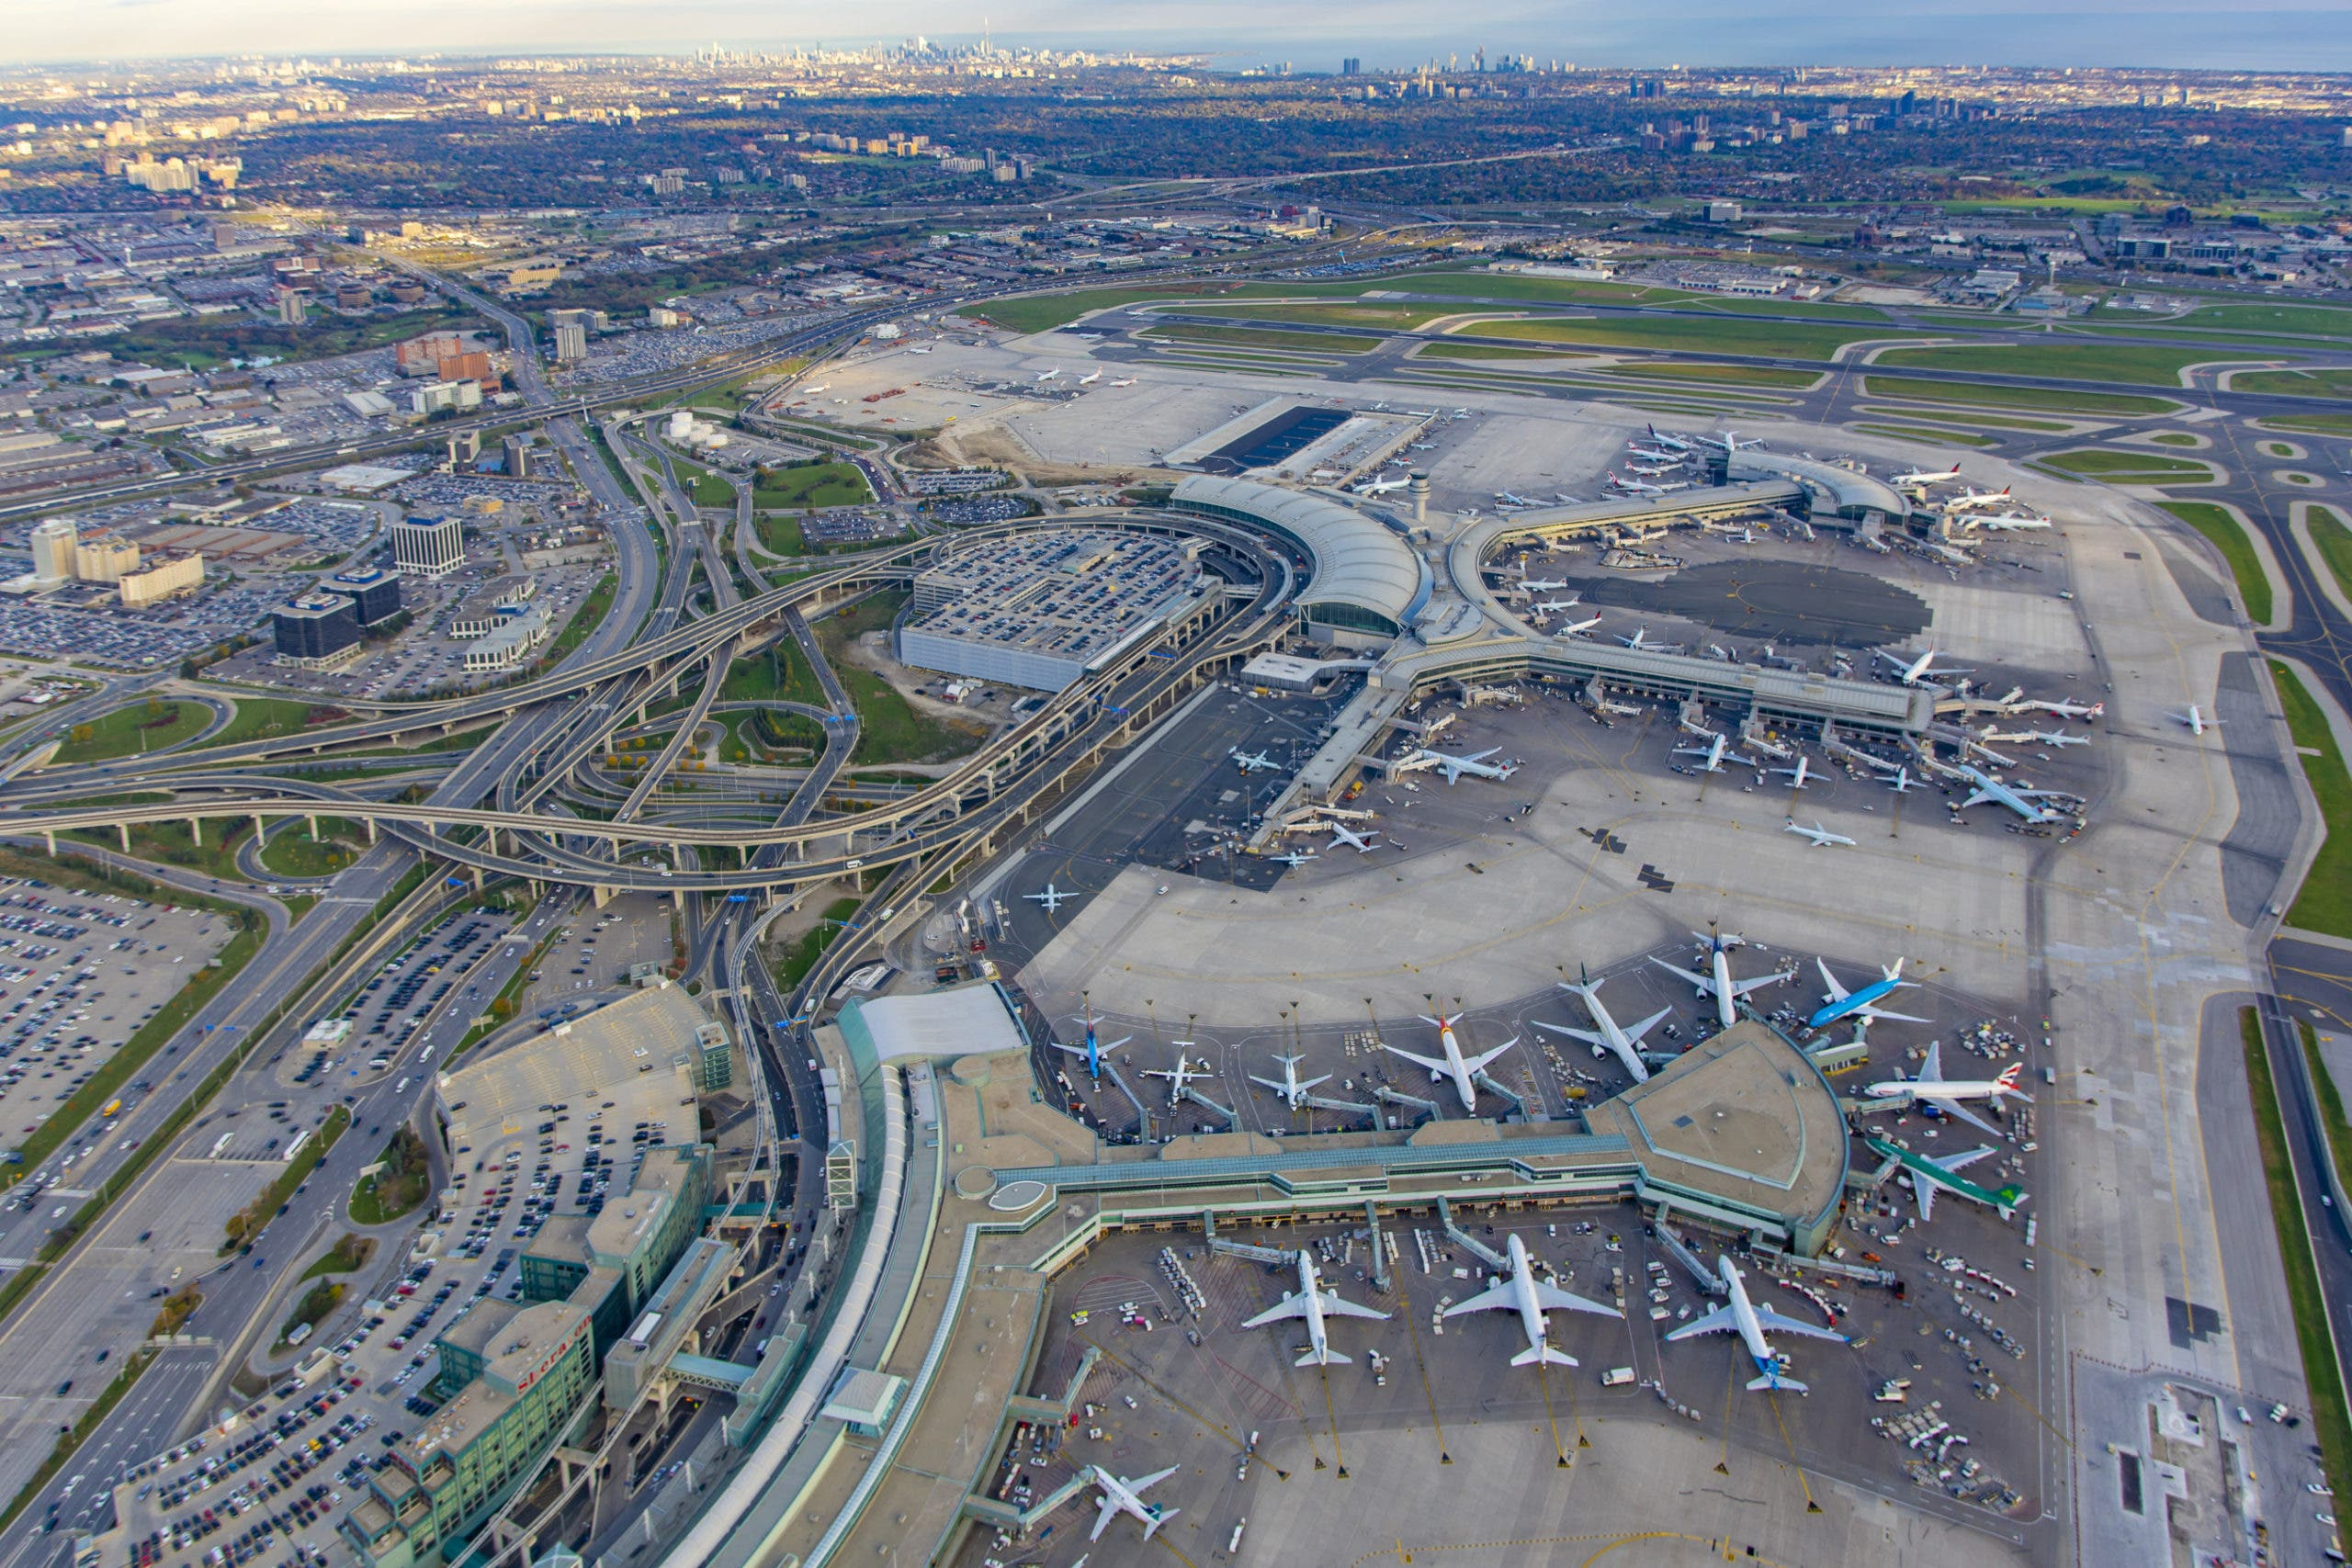 Toronto Pearson Wins Environment Award for 60% Reduction in Greenhouse Gas Emissions